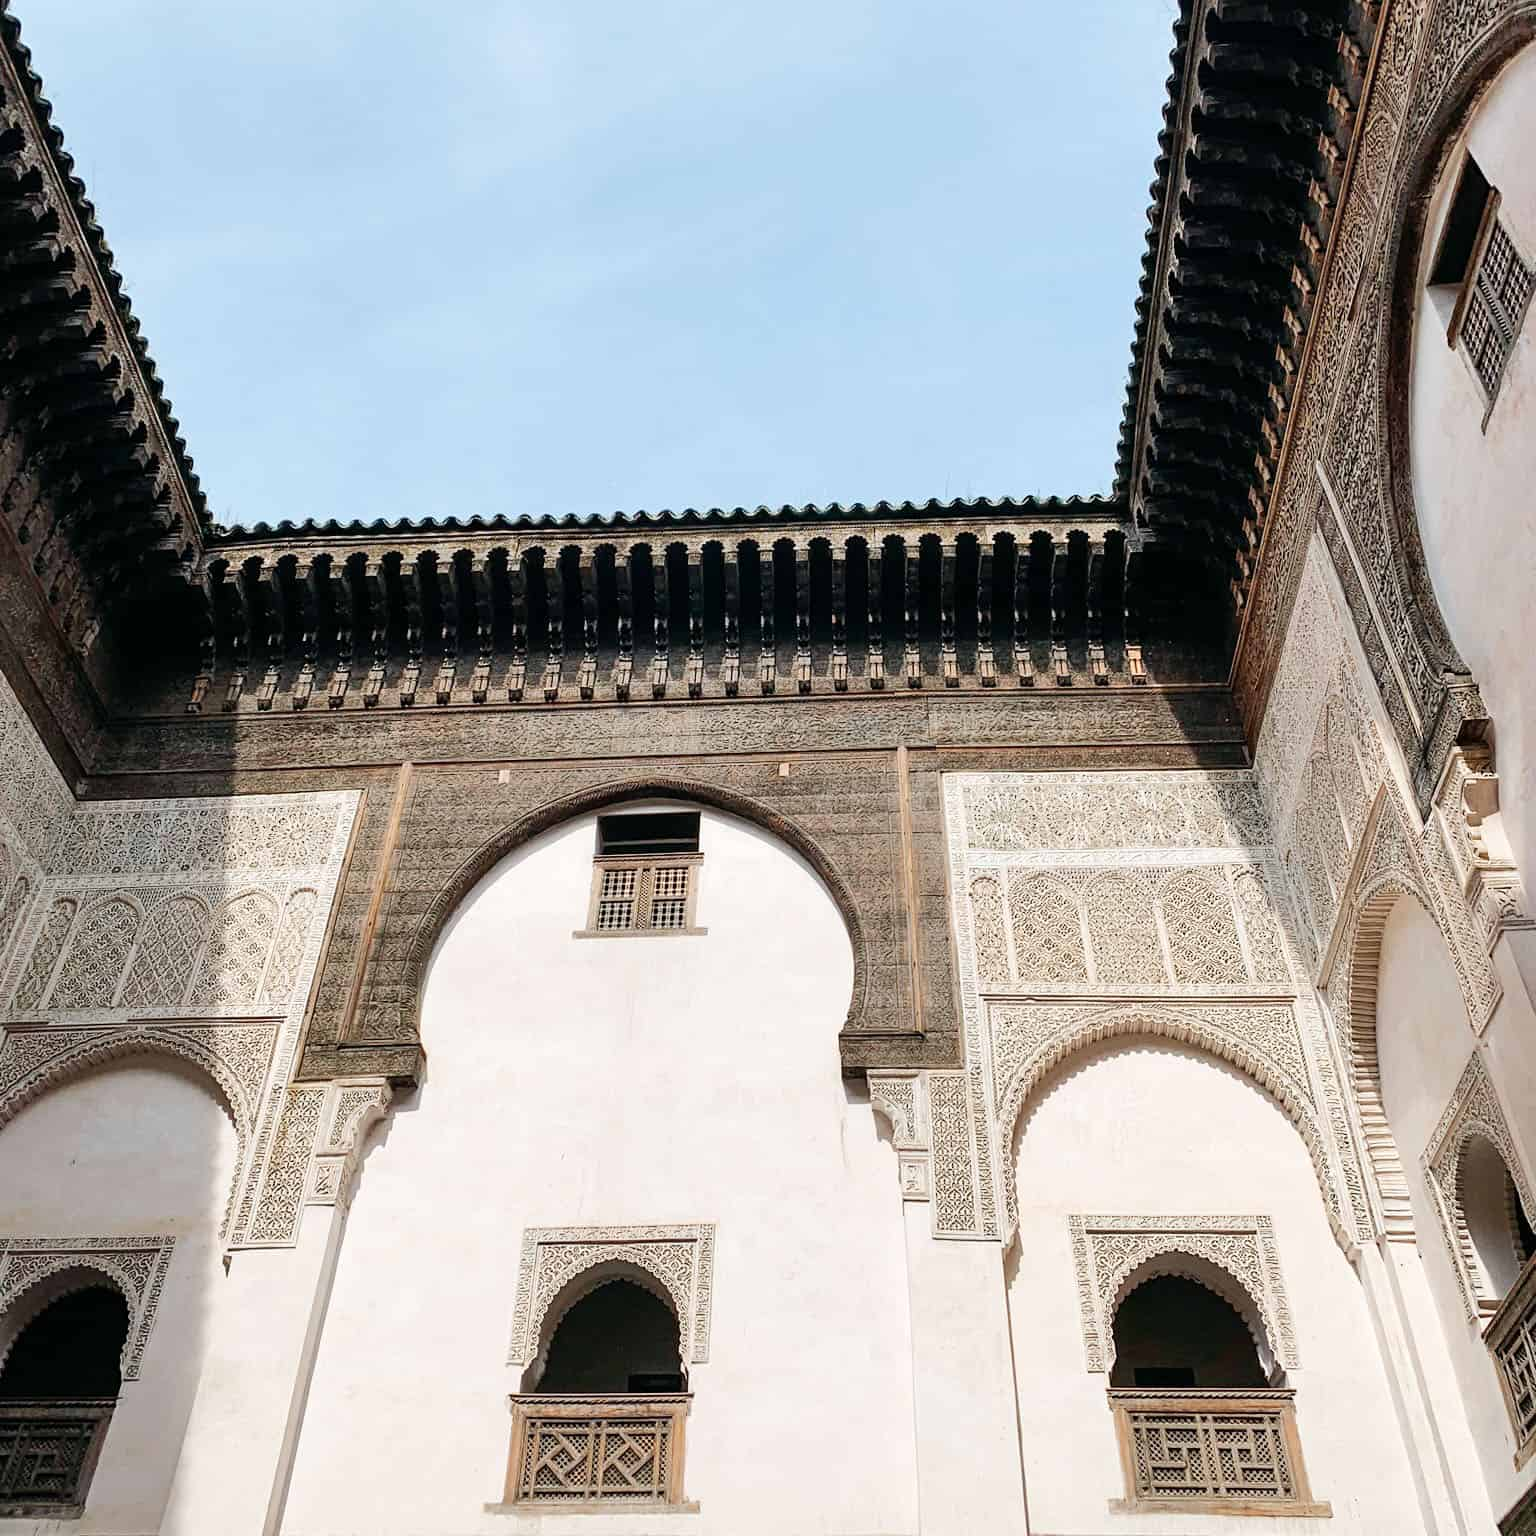 Lizzie & Kathryn's Guide To Fez, Morocco 28